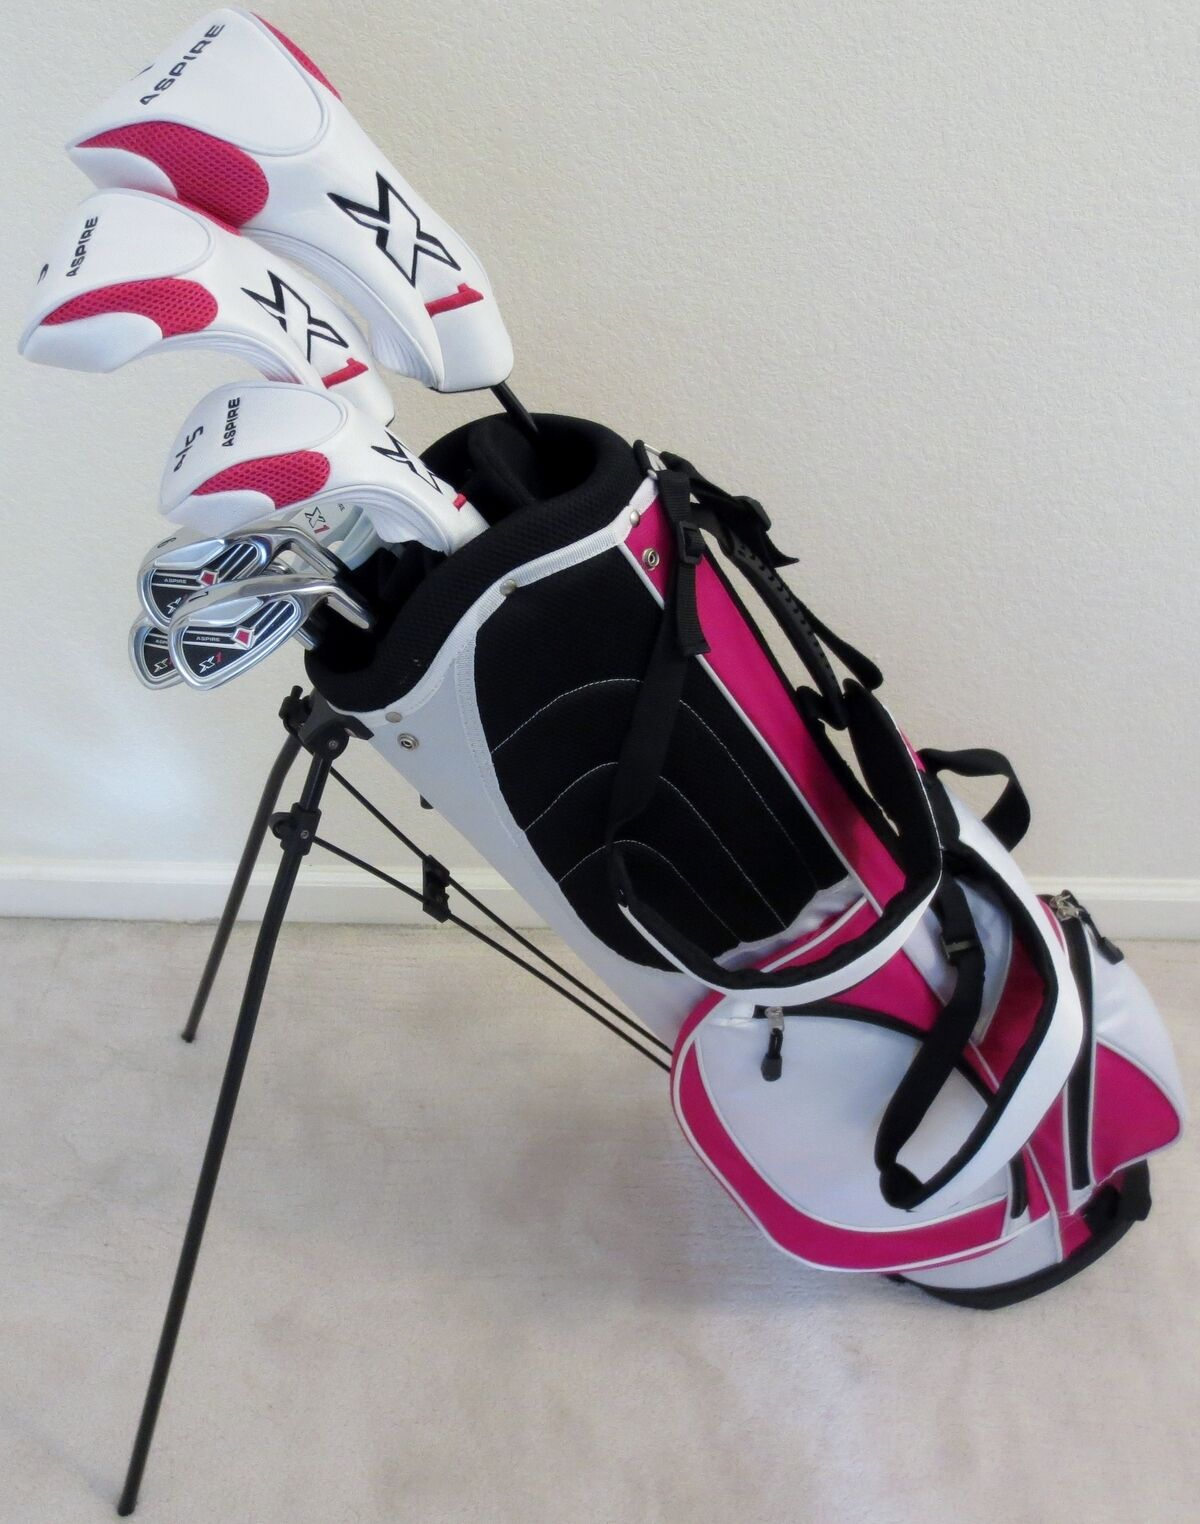 NEW Womens Petite Golf Club Set Complete with Stand Bag Grap